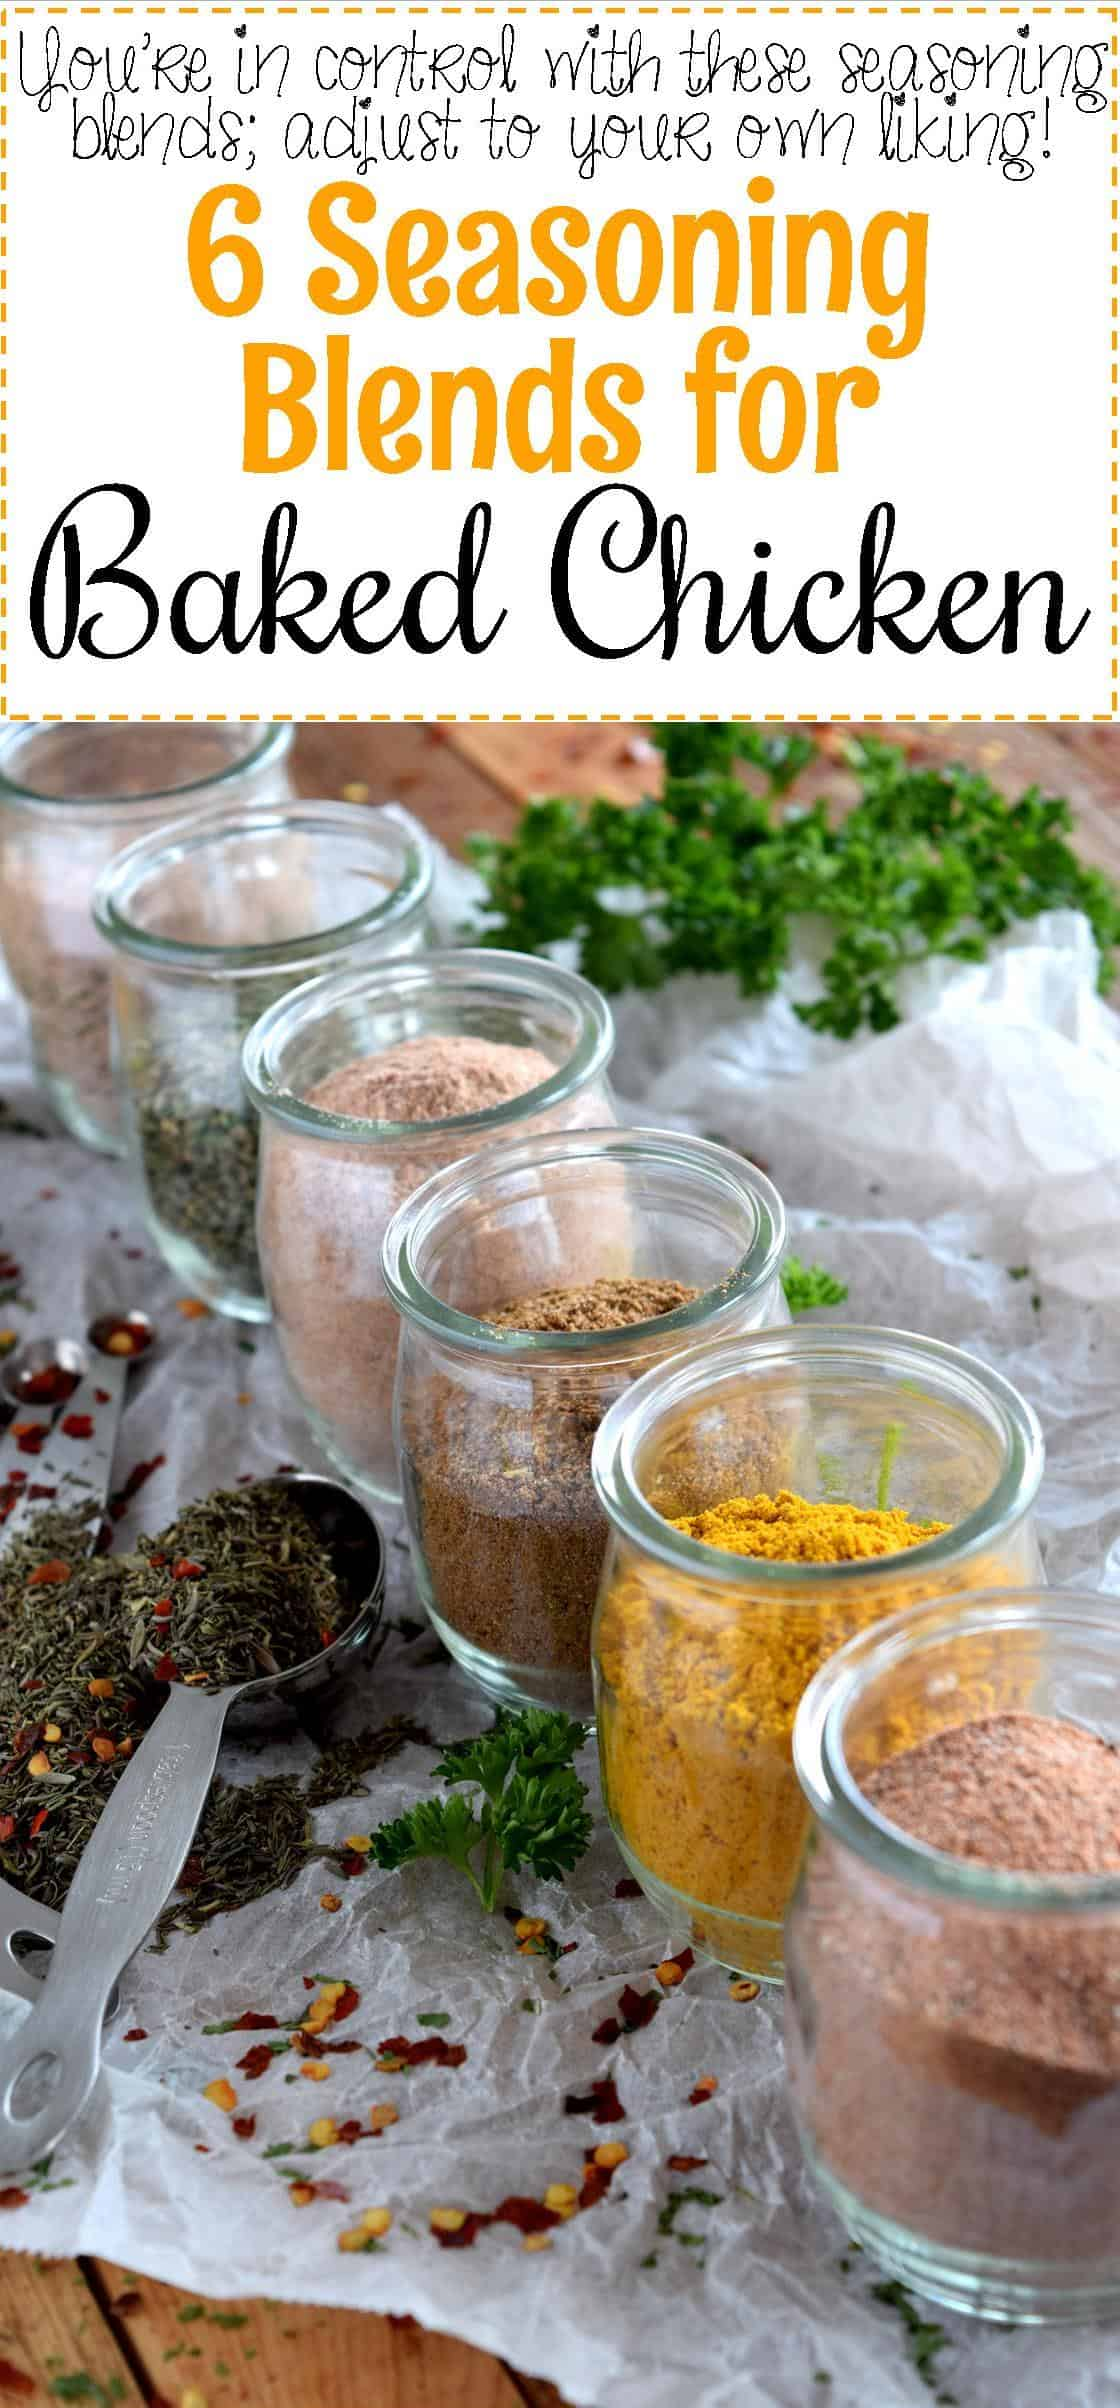 6 Seasoning Blends for Baked Chicken - Lord Byron's Kitchen